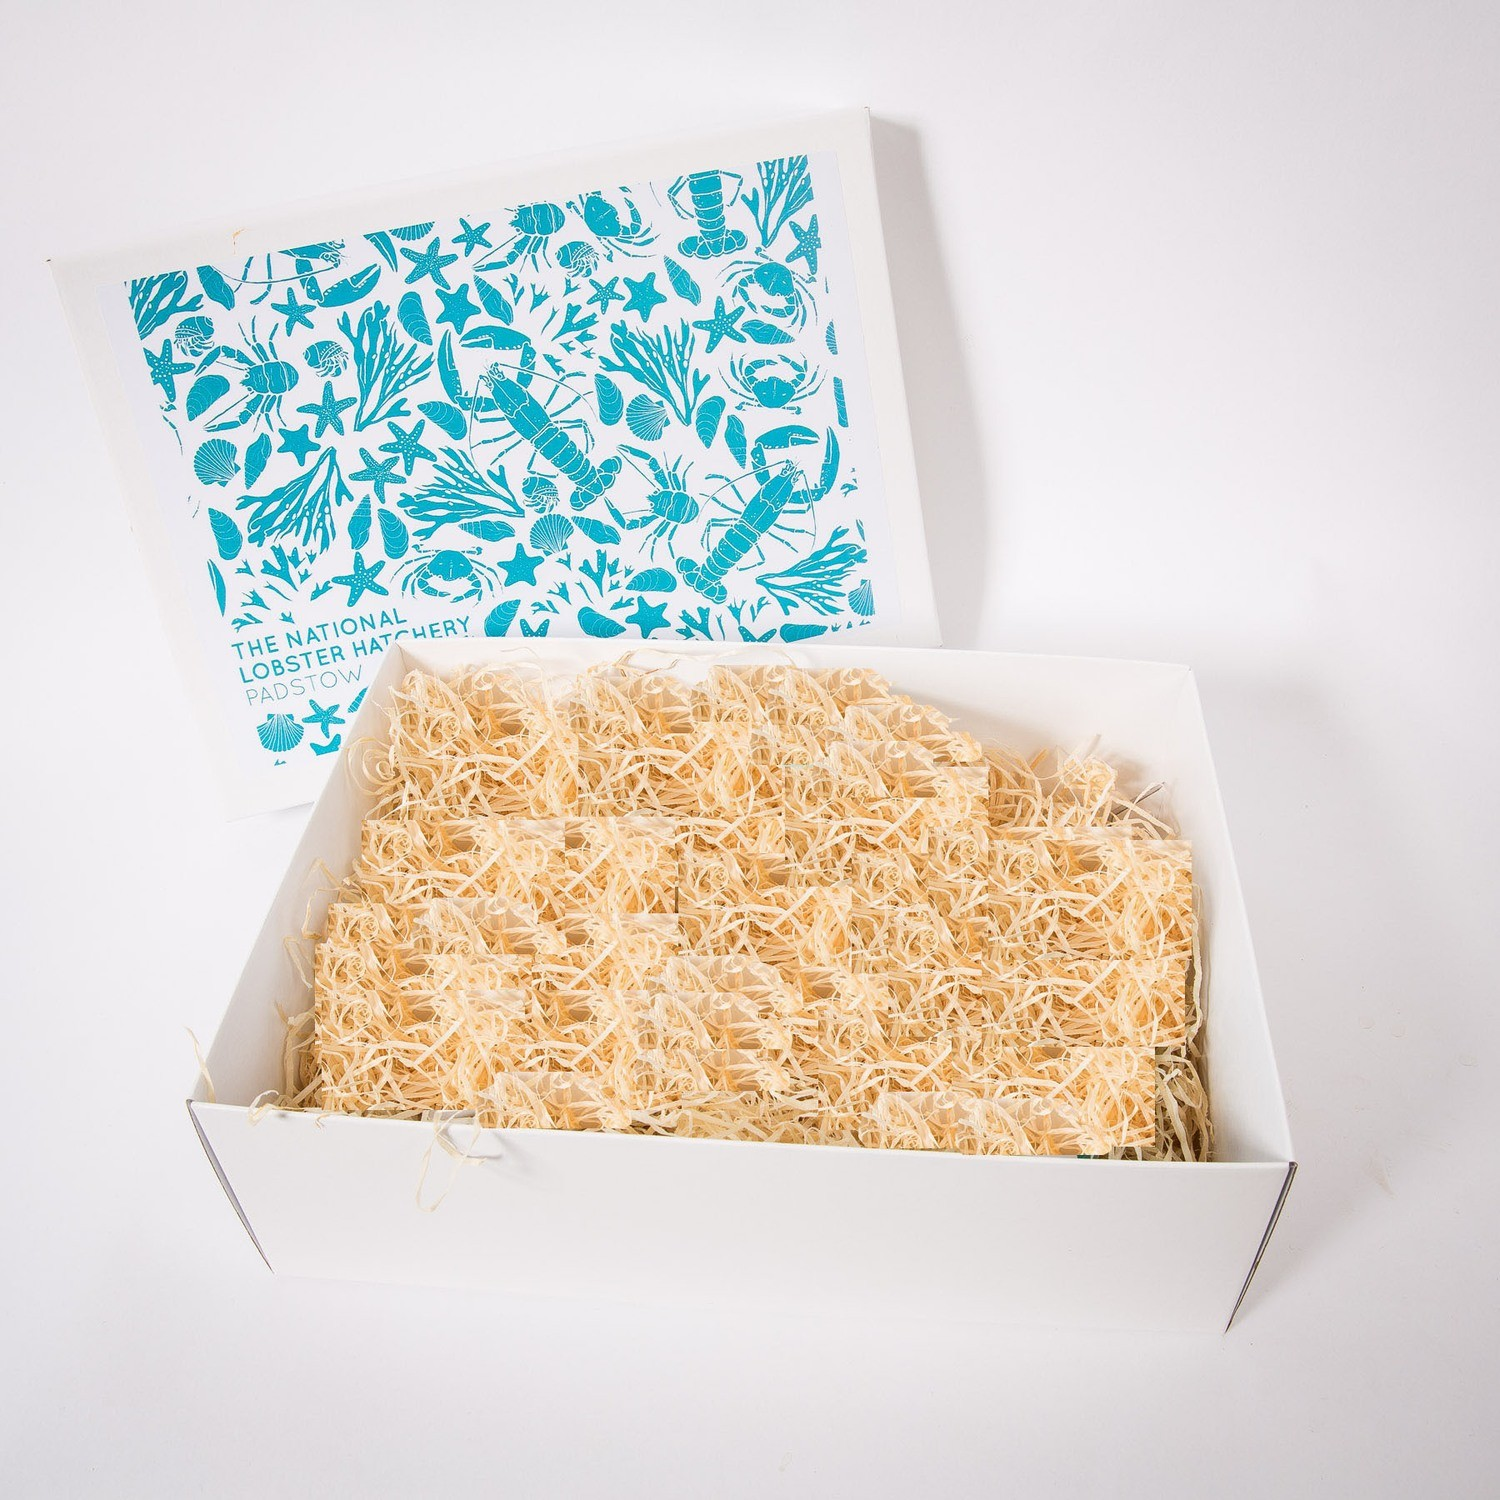 Make your own Hamper / Gift Box